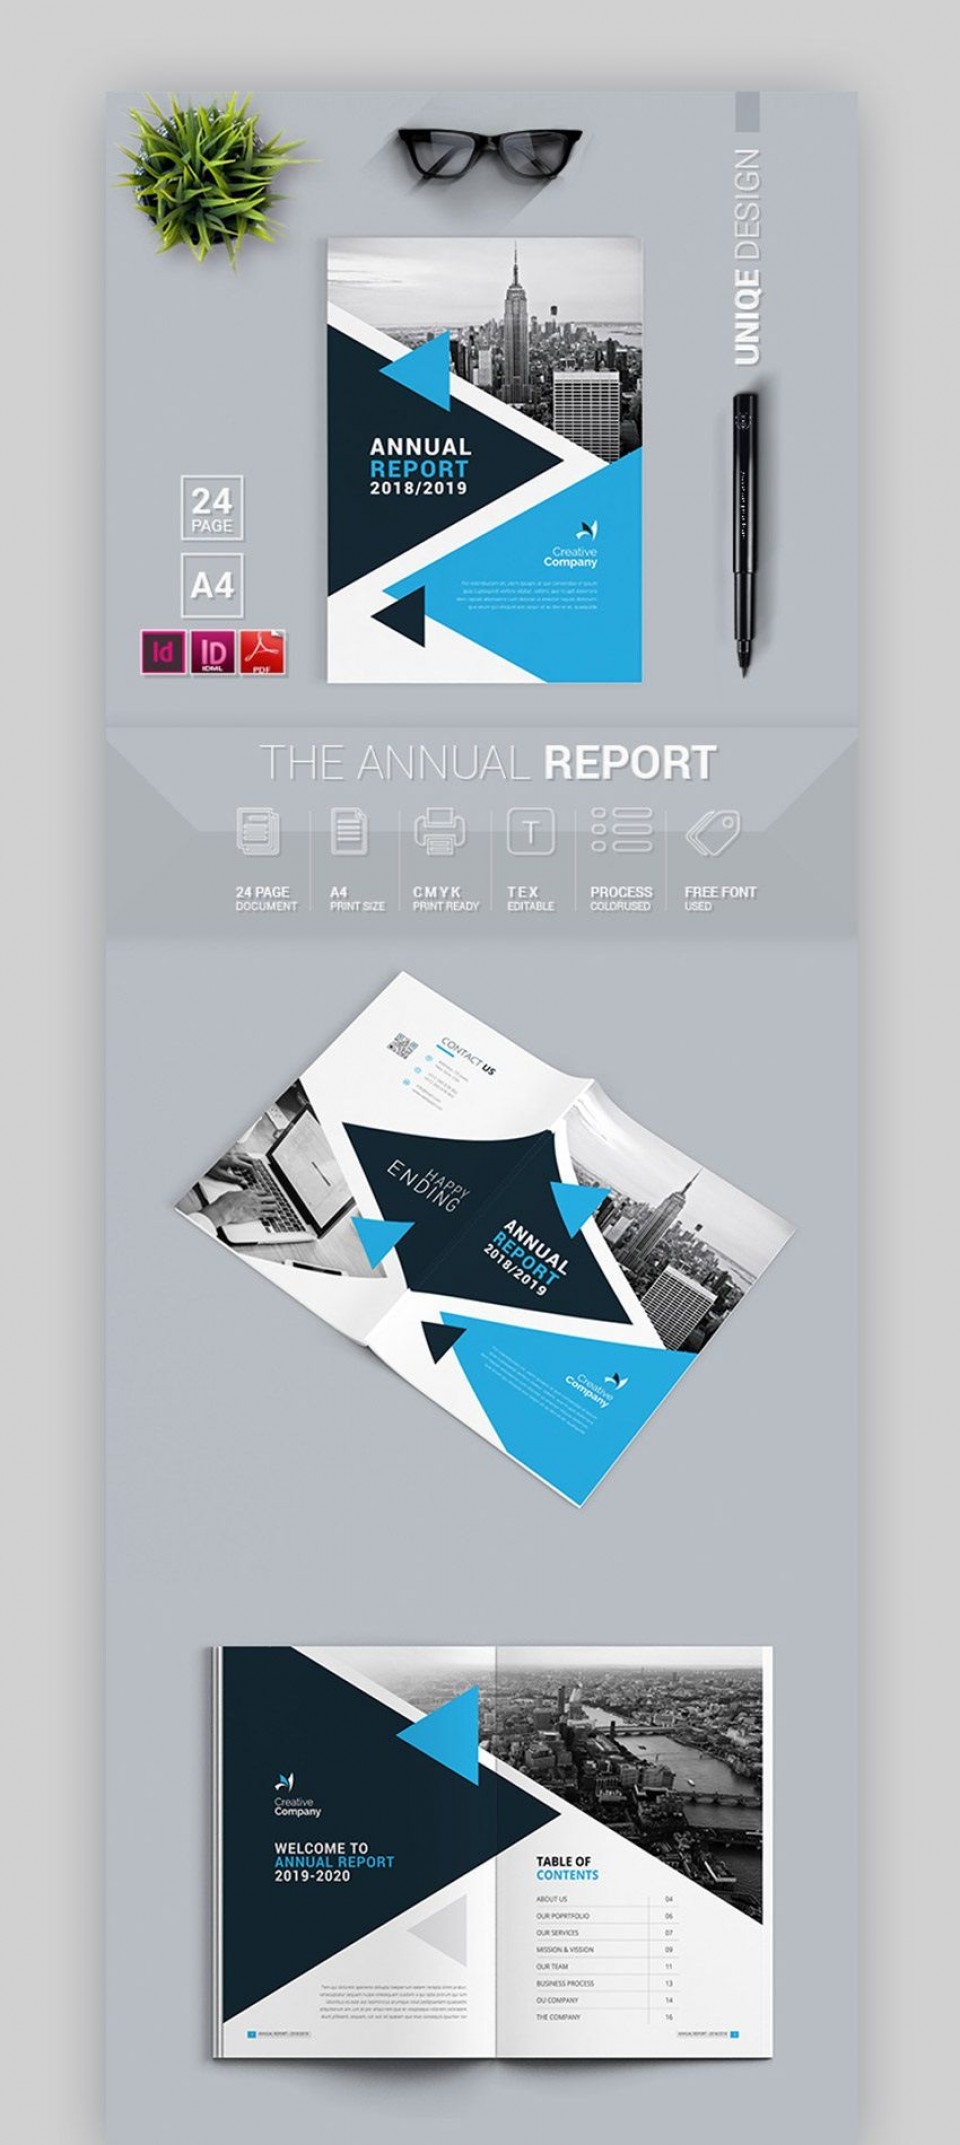 001 Fascinating Annual Report Design Template Indesign  Free Download960